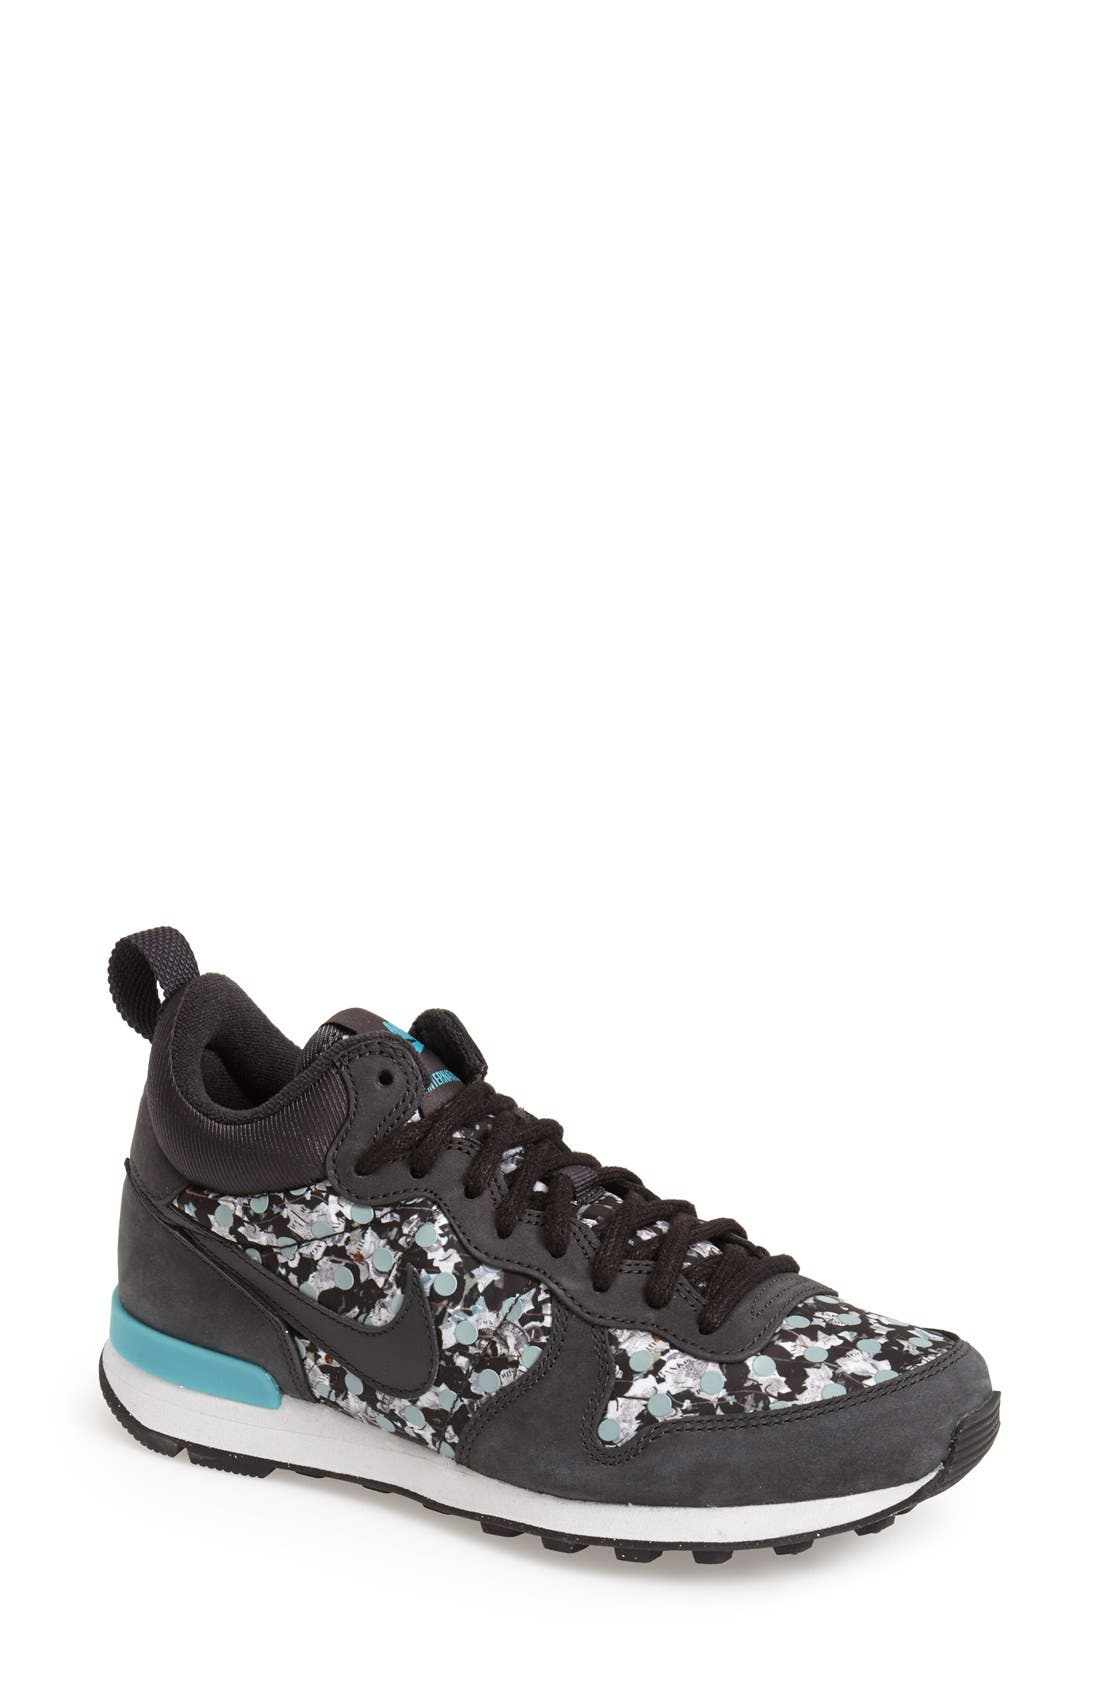 Alternate Image 1 Selected - Nike 'Internationalist Mid - Liberty' Sneaker (Women)